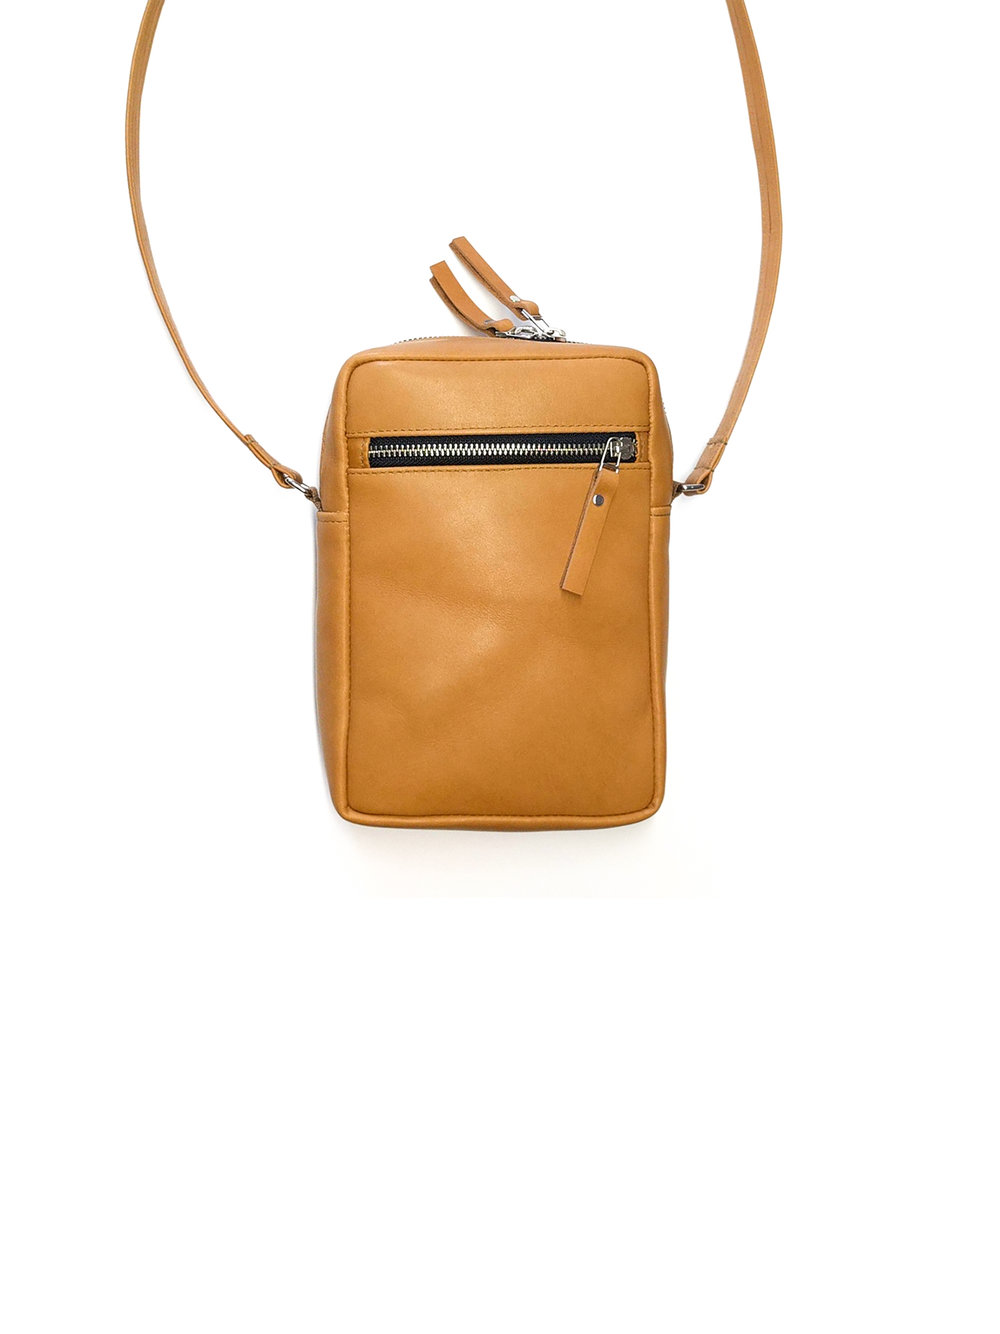 Leather crossbody bag - more colors available140.00$